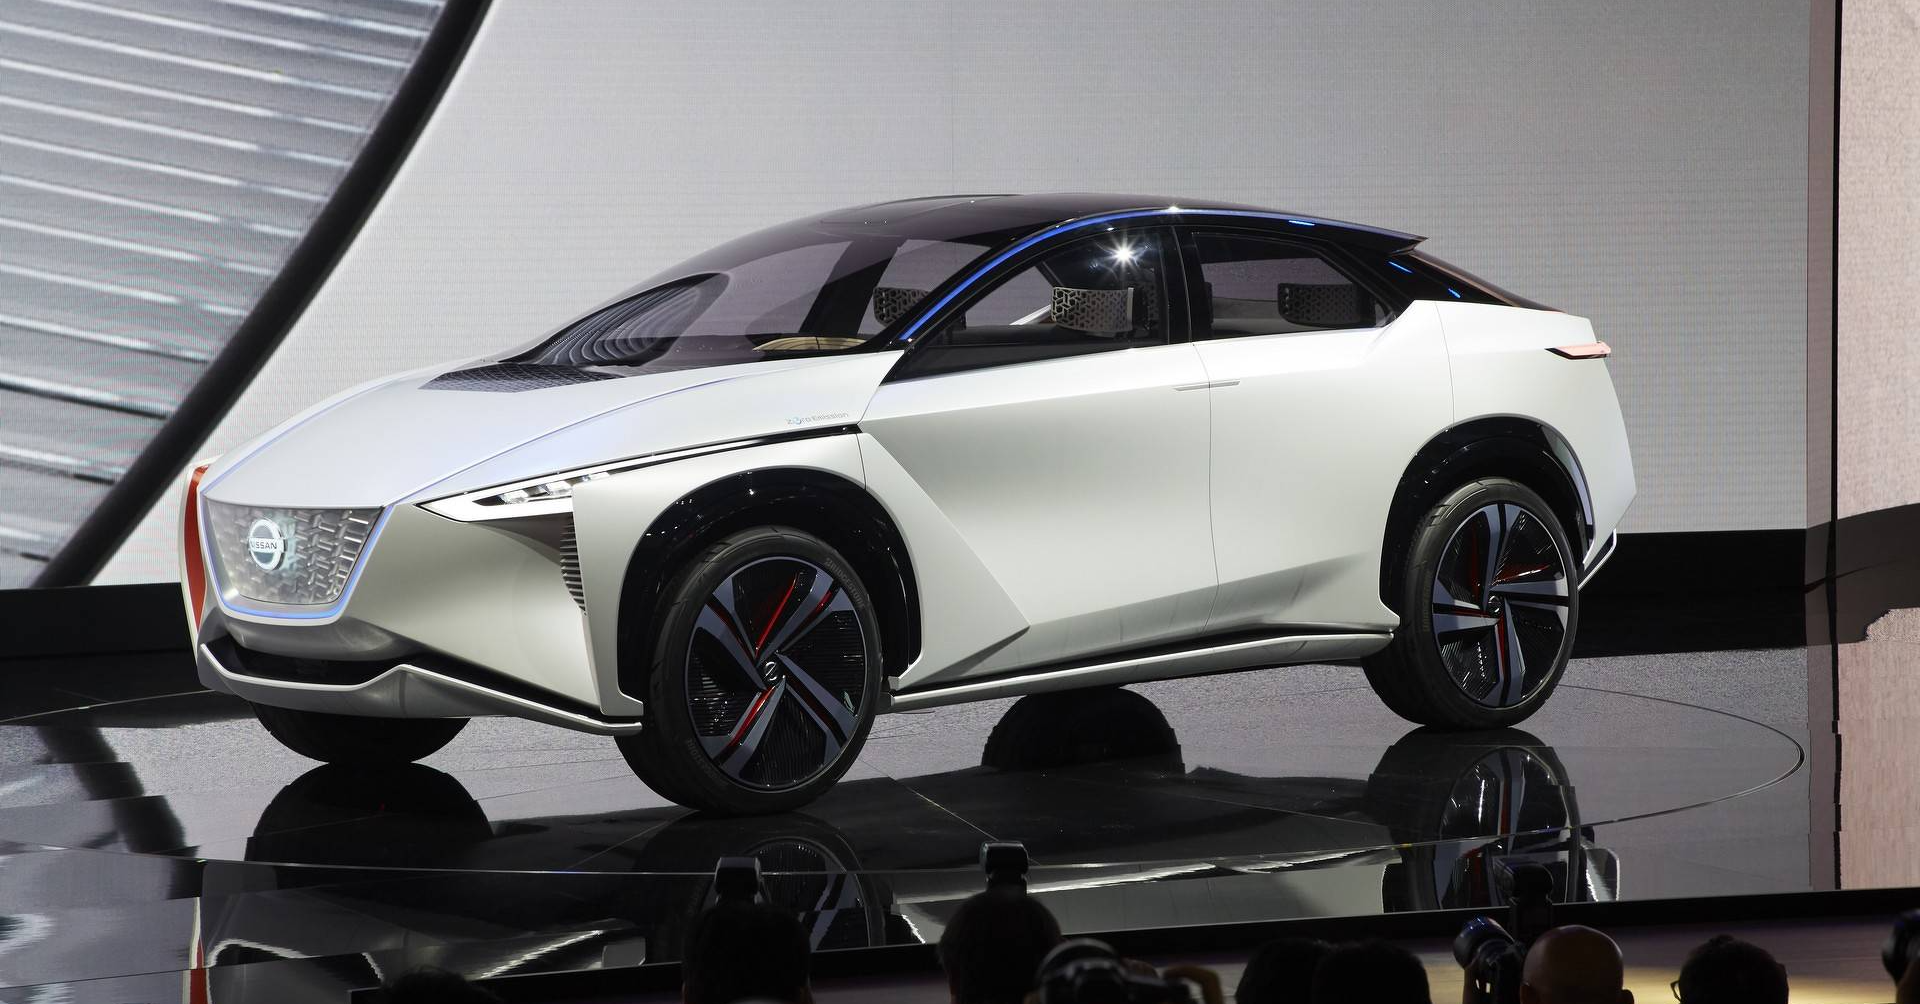 Reasons for the Nissan Delay for the EV SUV